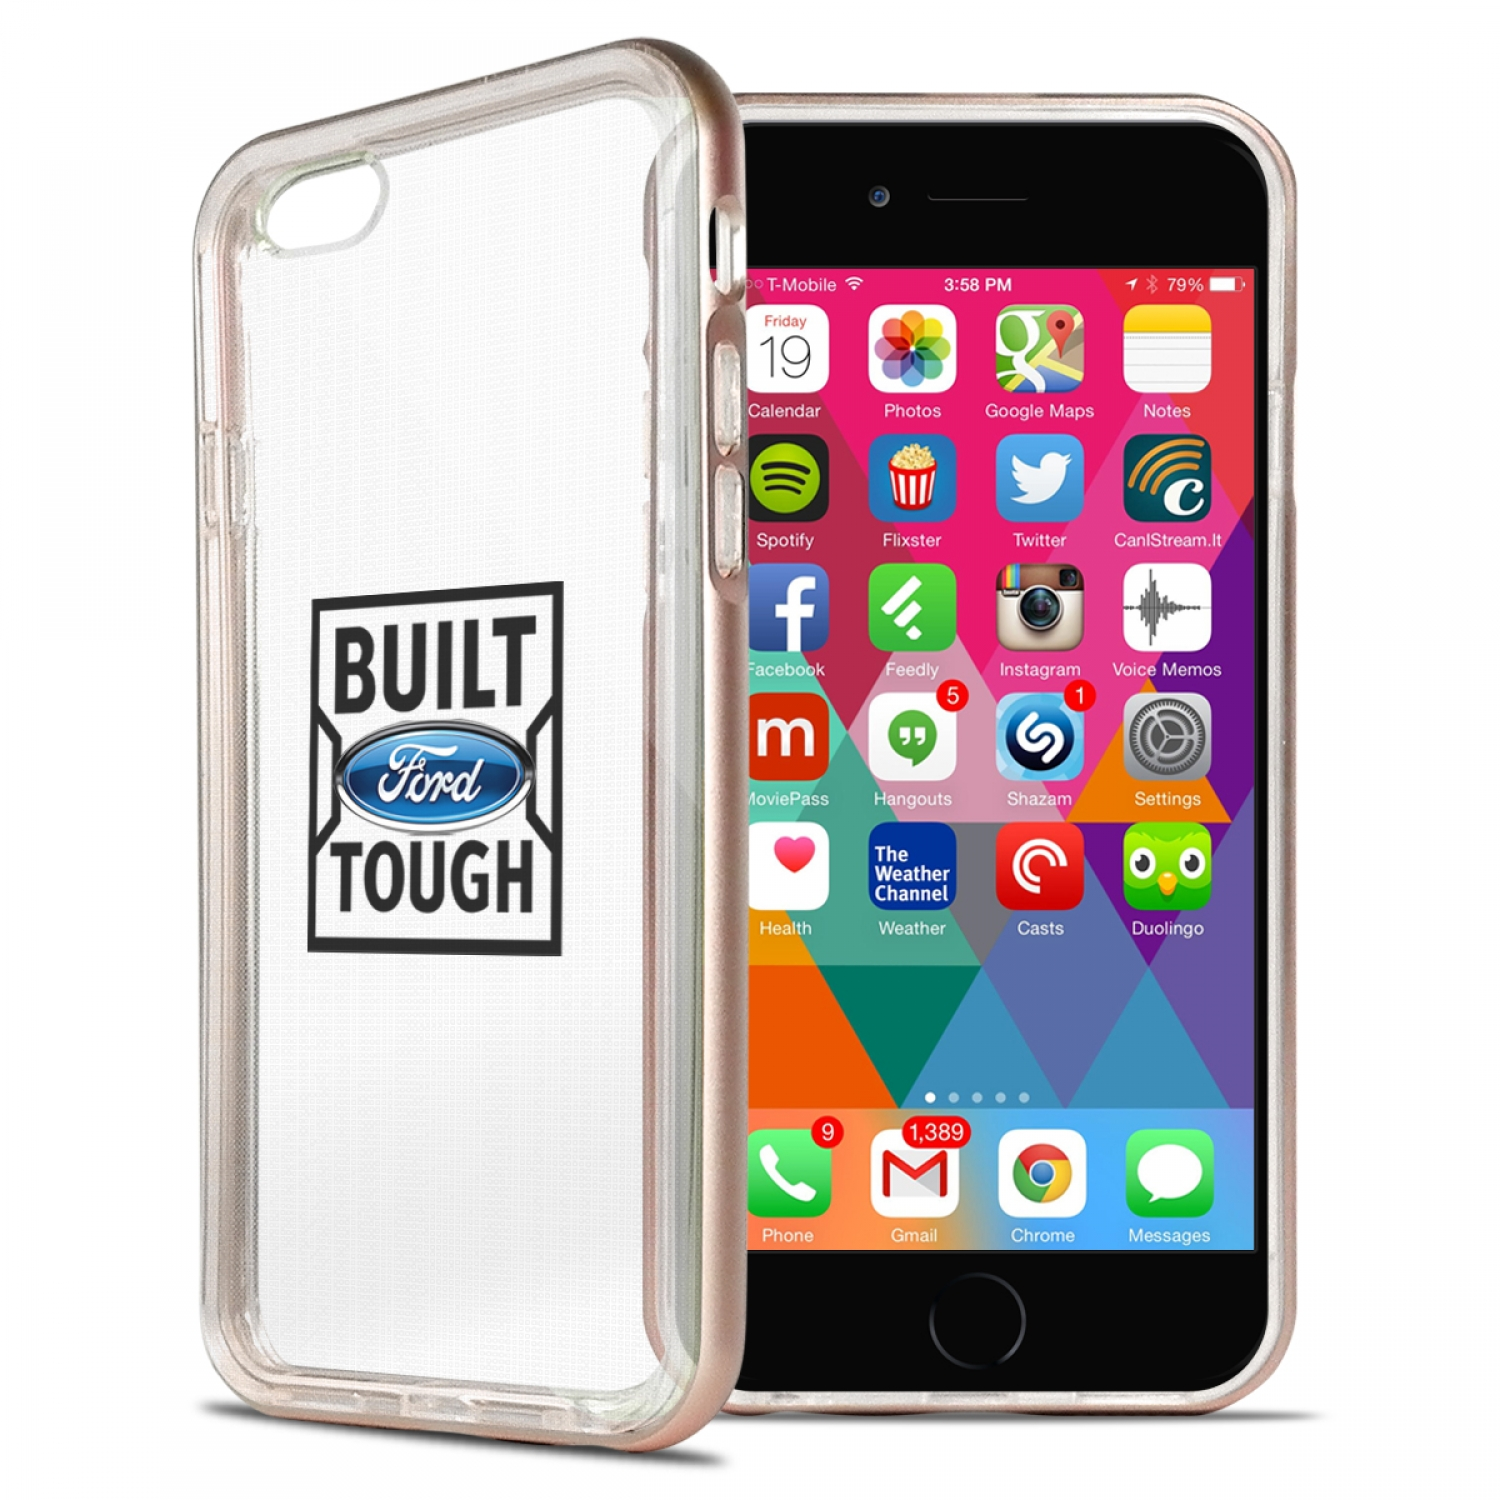 Ford Built Ford Tough iPhone 6 6s Shockproof Clear TPU Case with Rose Pink Metal Bumper Hybrid Phone Case